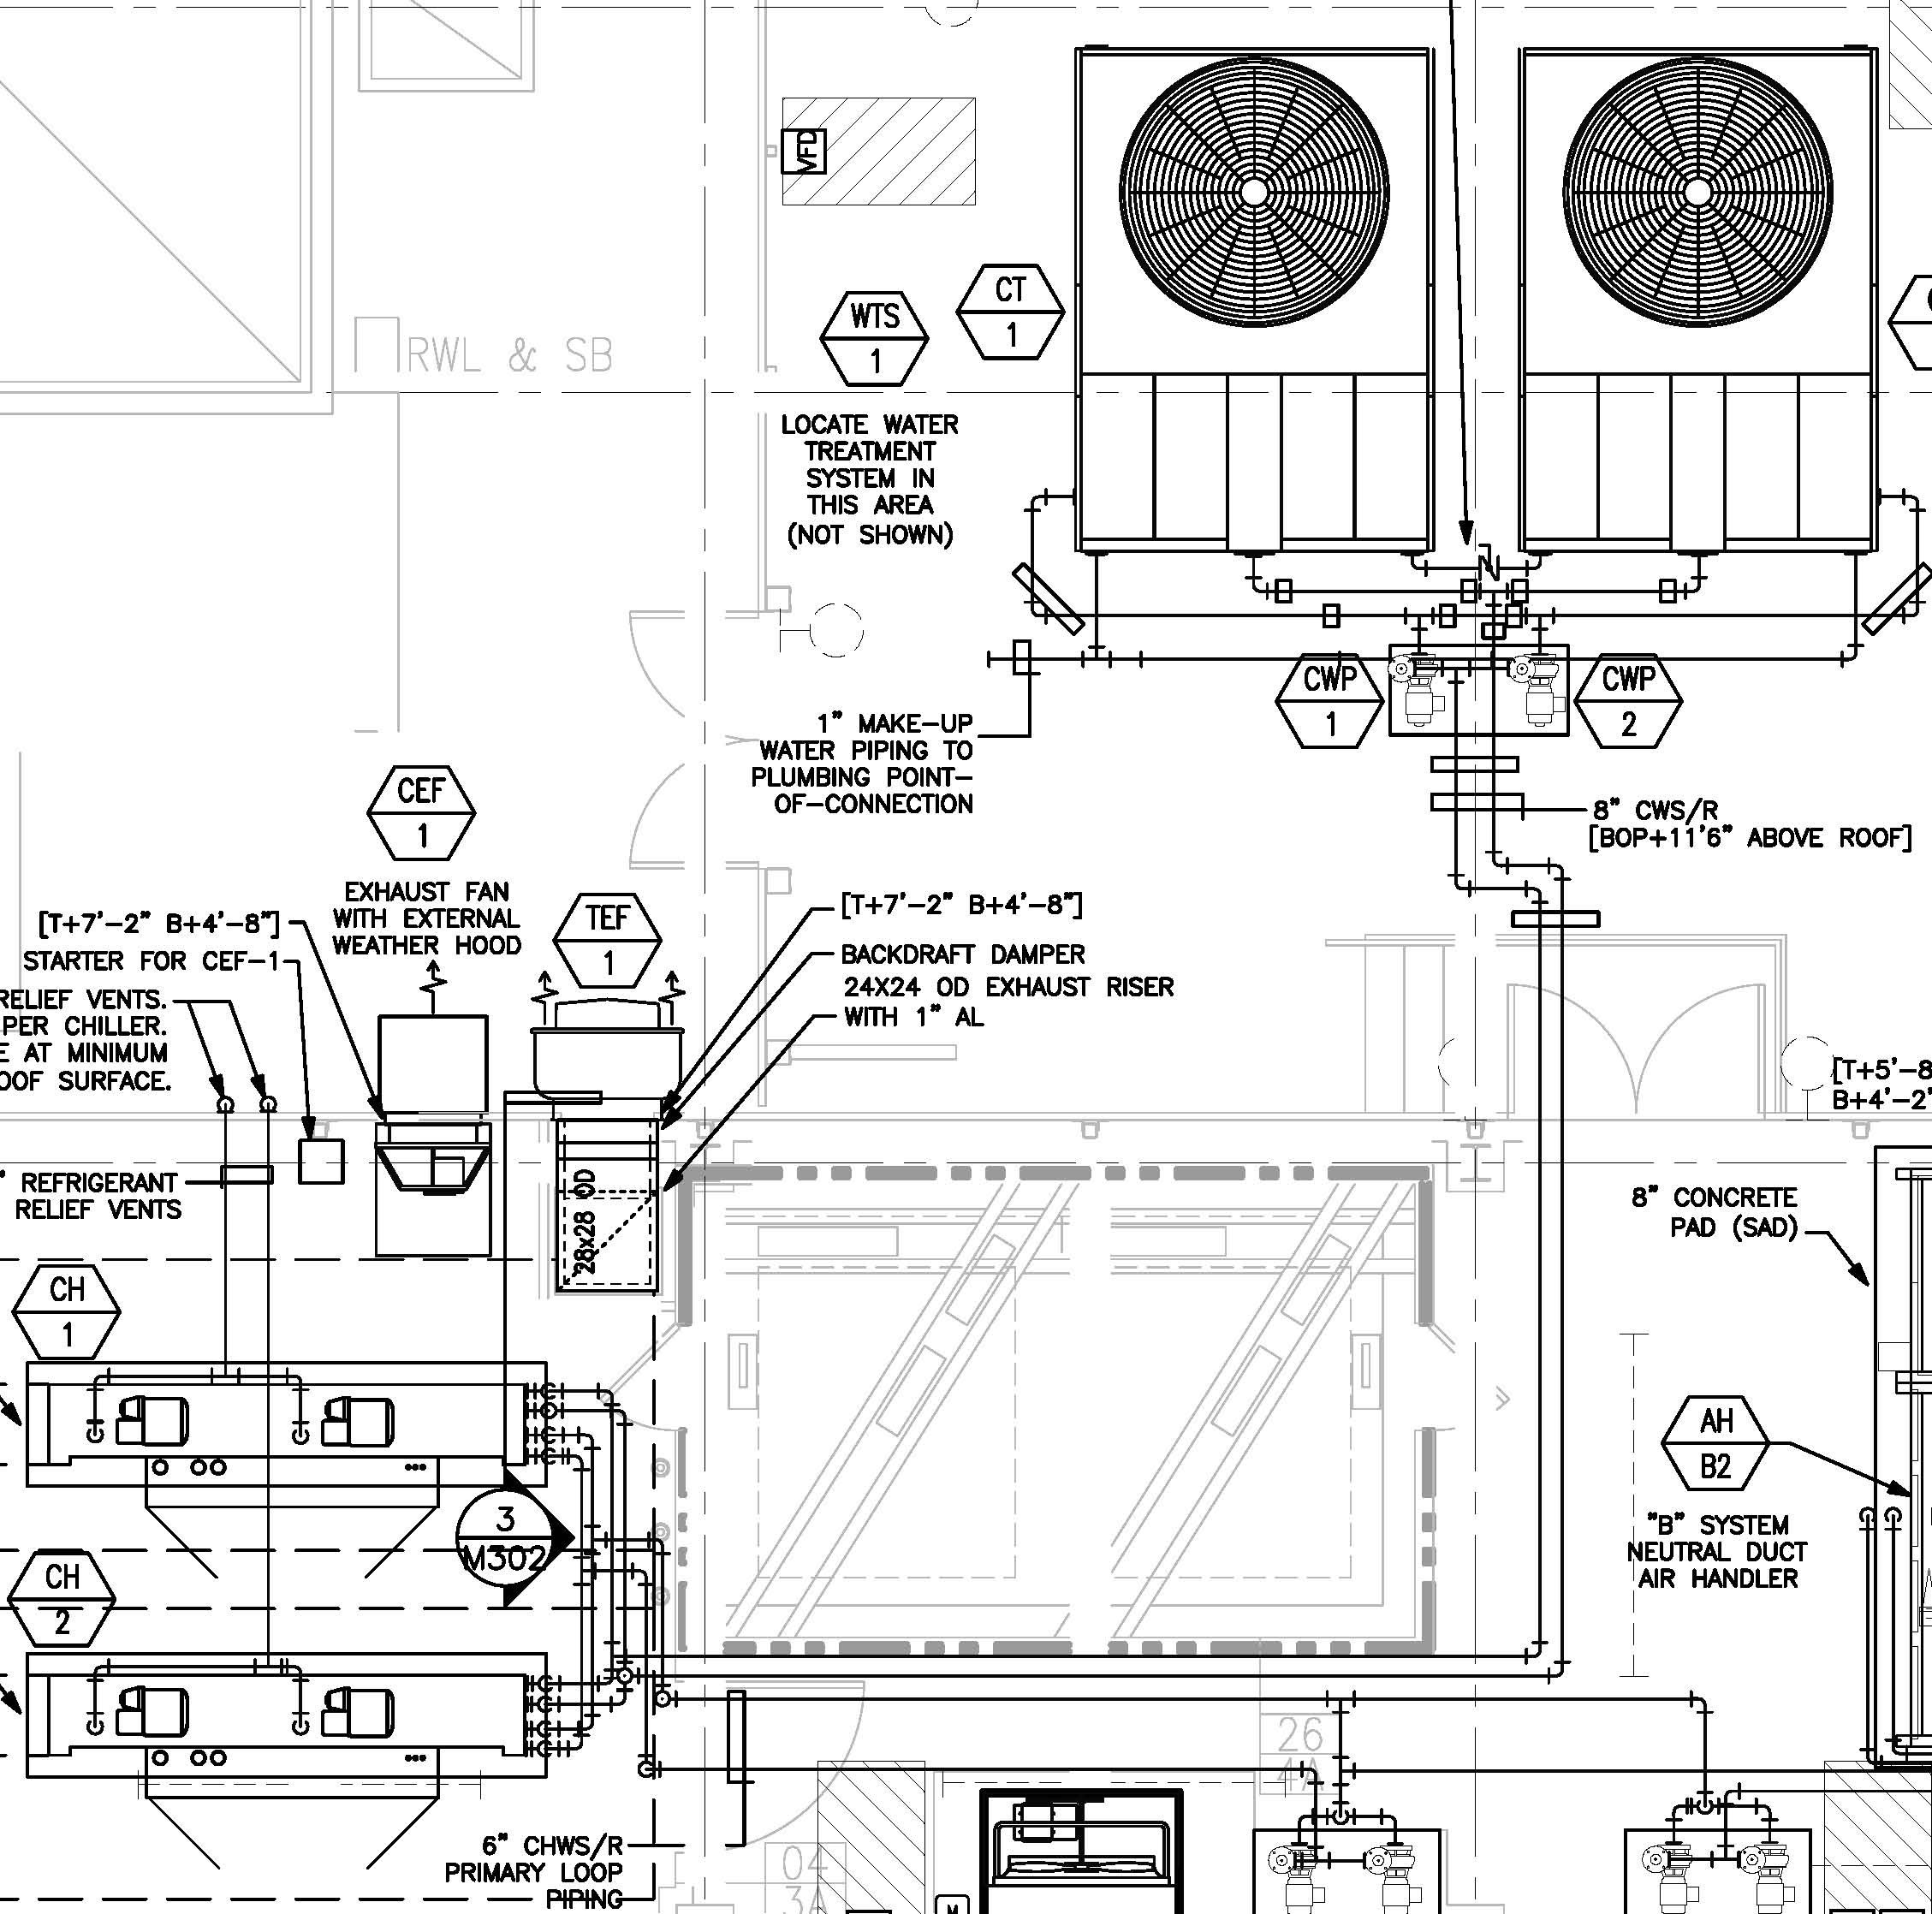 Air conditioner wiring diagram picture download wiring diagram sample air conditioner wiring diagram picture collection wiring diagram ac new 16 unique air conditioner wiring cheapraybanclubmaster Choice Image